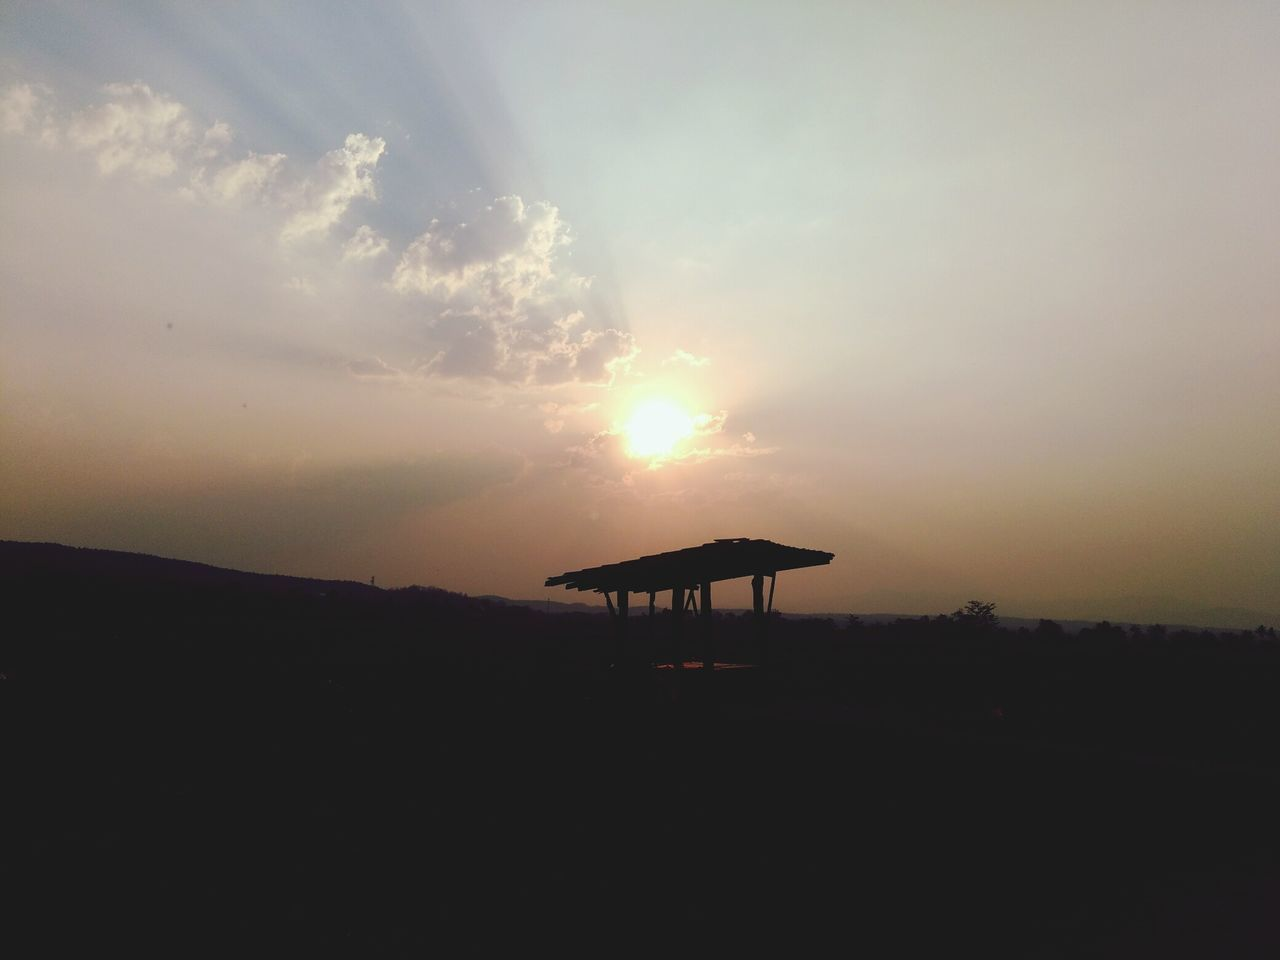 sunset, silhouette, nature, scenics, beauty in nature, tranquility, landscape, tranquil scene, no people, sky, outdoors, day